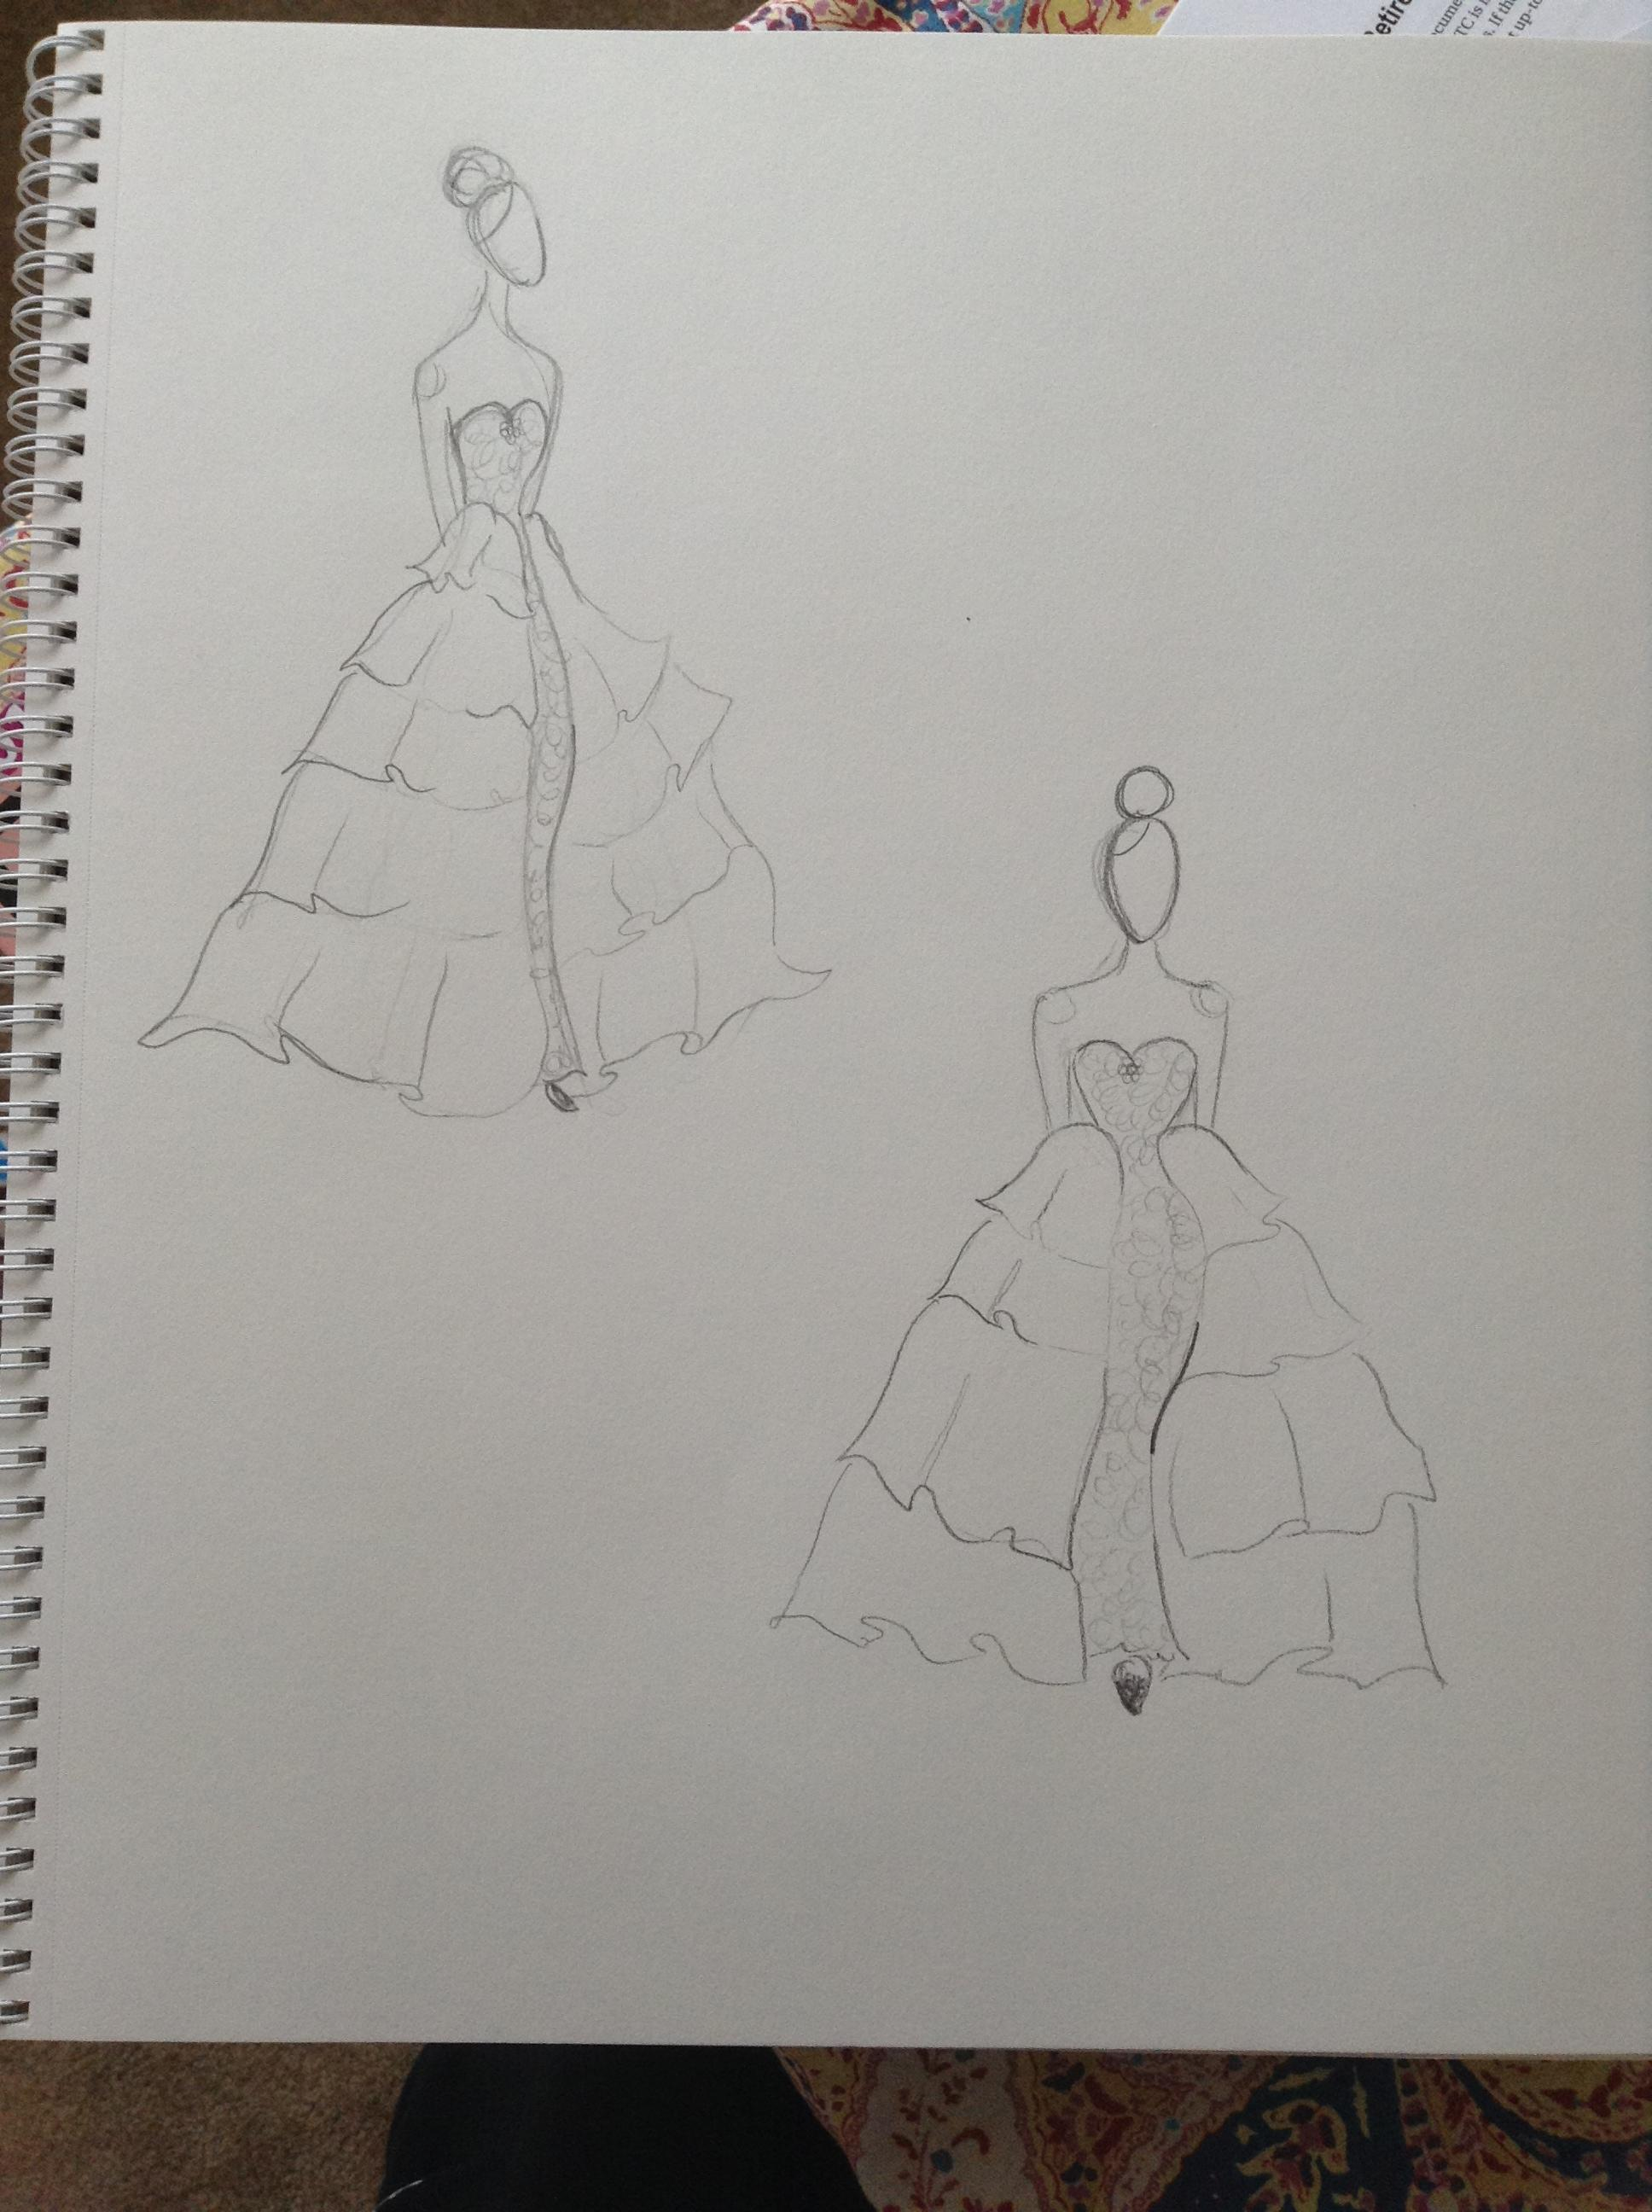 UPDATED 3/21 MILESTONE: Flirty, fun, effortlessly chic - image 8 - student project